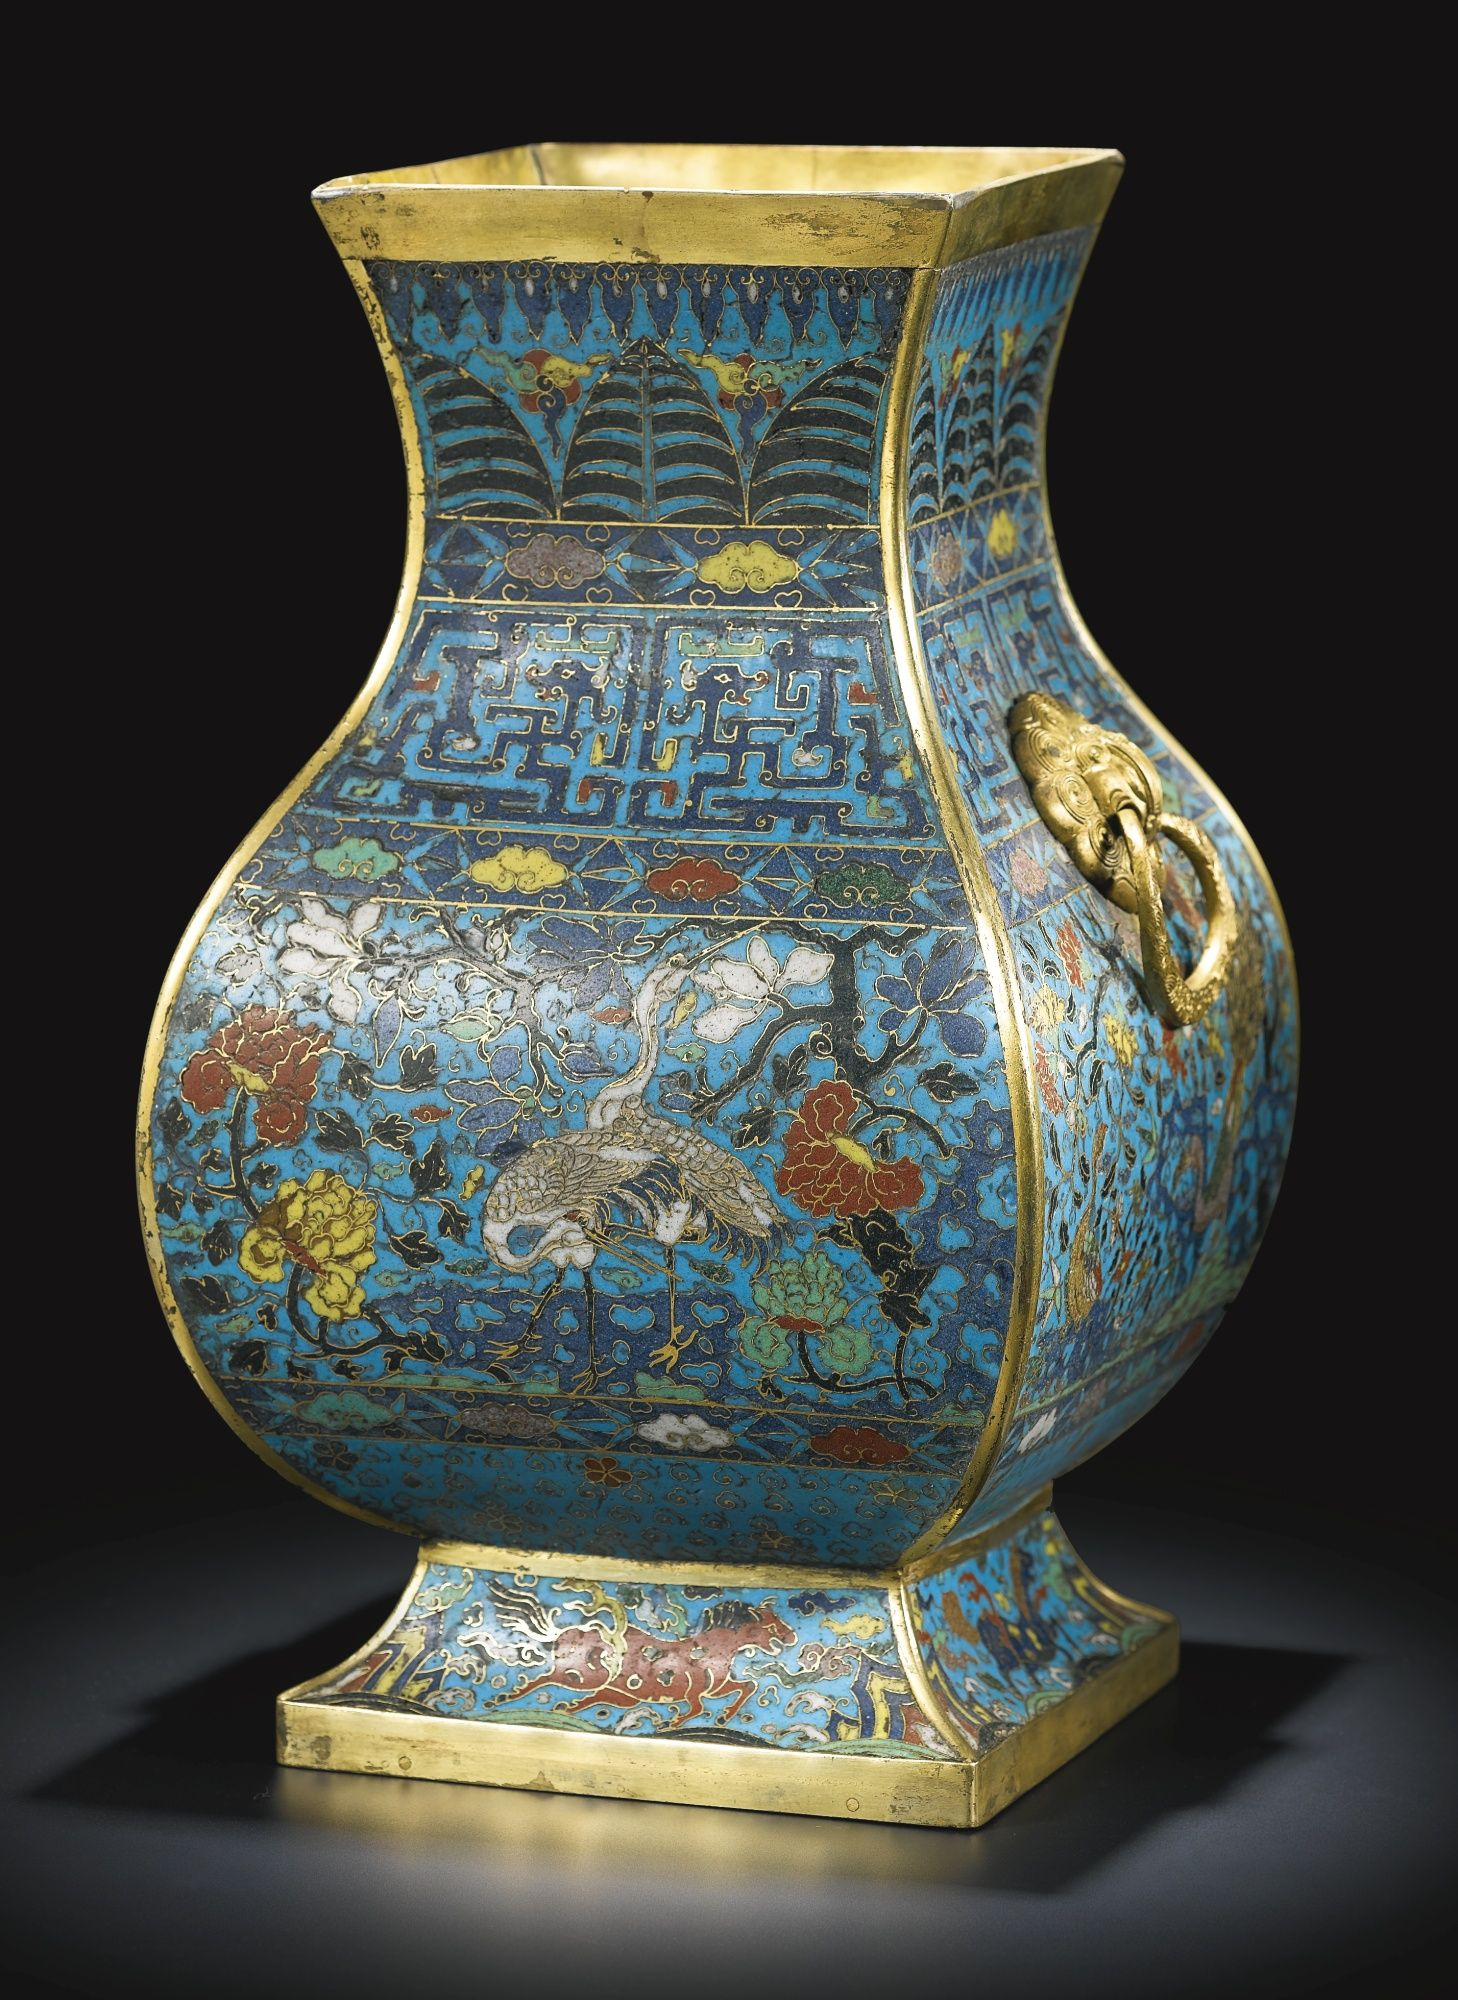 A cloisonn enamel crane and peacock vase fanghu qing dynasty a cloisonn enamel crane and peacock vase fanghu qing dynasty qianlong period of square section the pear shaped body rising from a spreading foot to a reviewsmspy